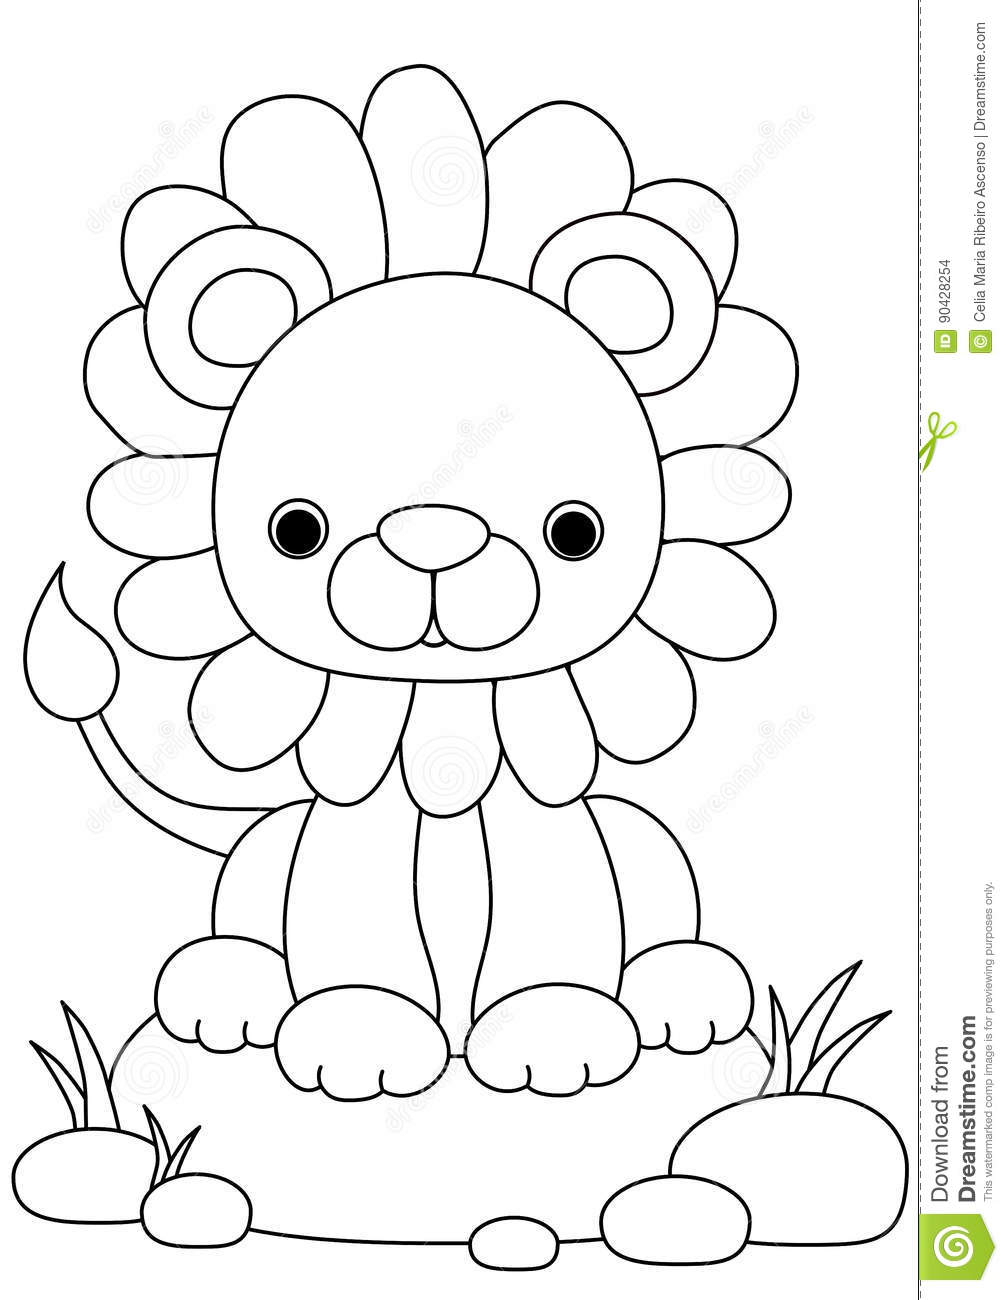 animal coloring page lion stock illustration illustration of colour